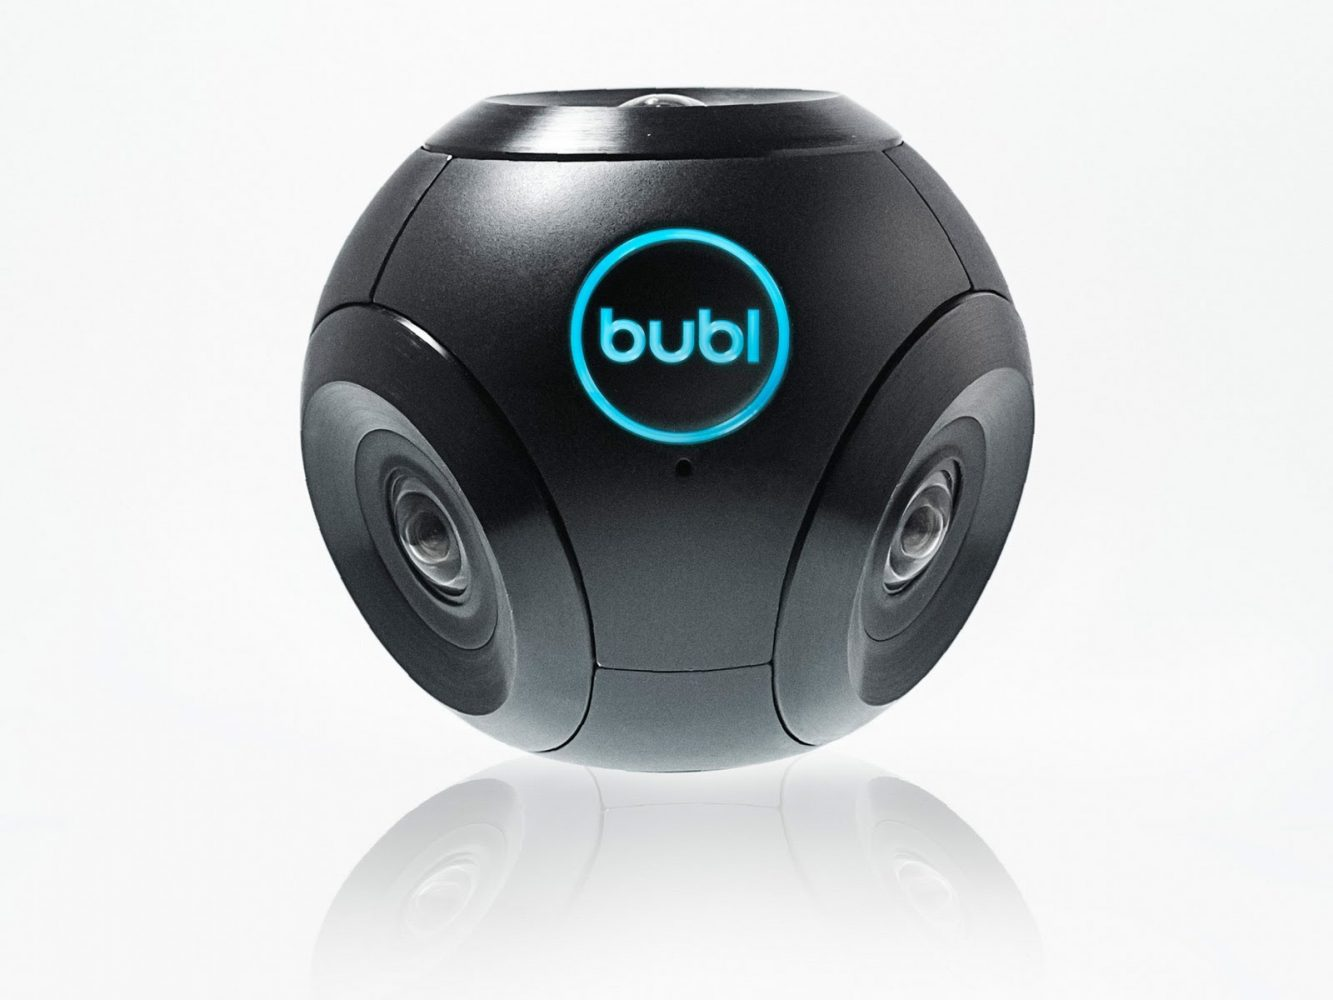 Bublcam Review - Is this the best 360° camera yet? - 360° Camera ...